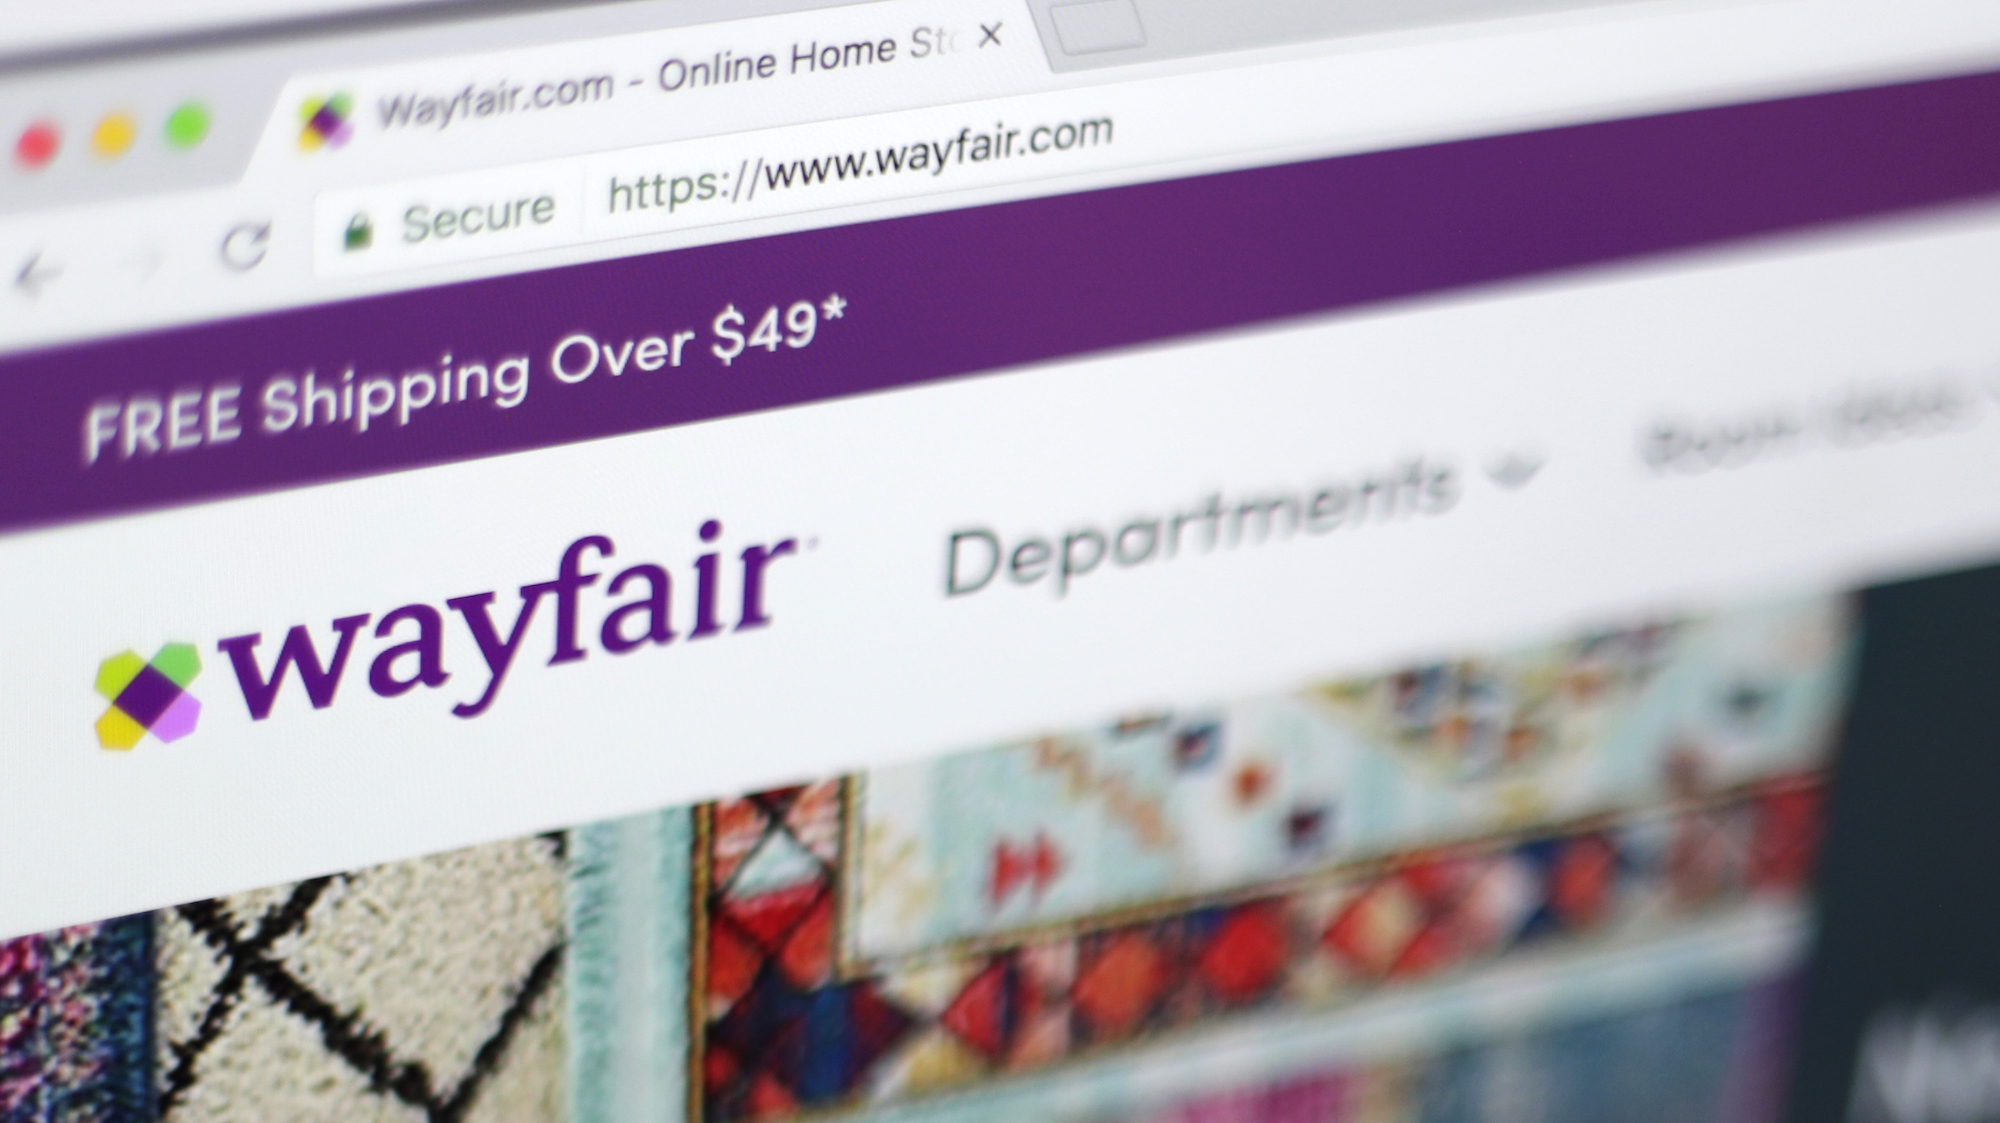 Wayfair: No big impact from Supreme Court case